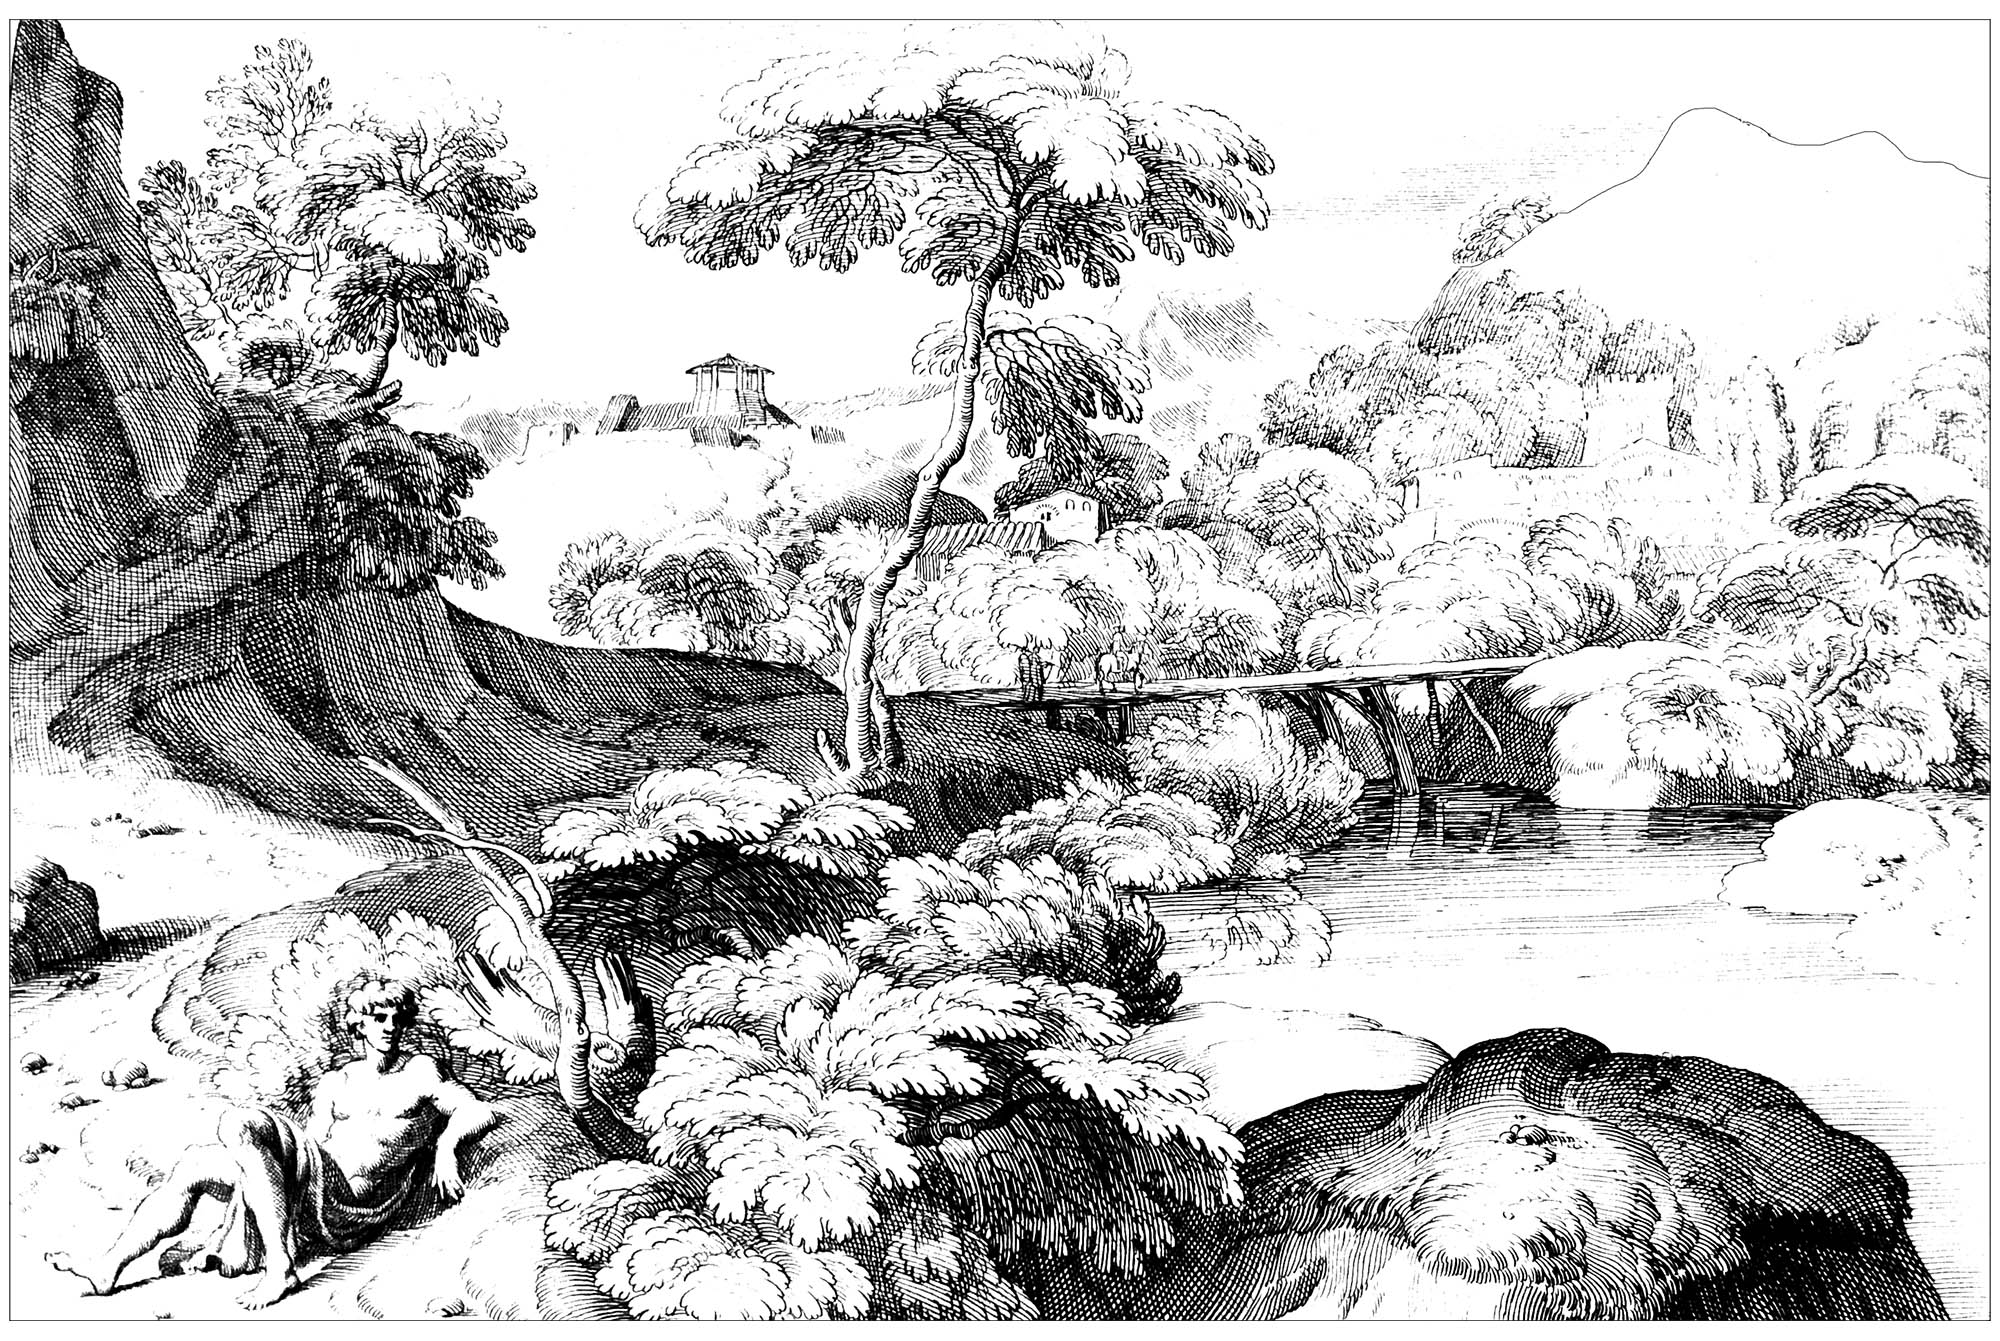 Landscape drawing, by Jacques Rousseau (1630-1693)